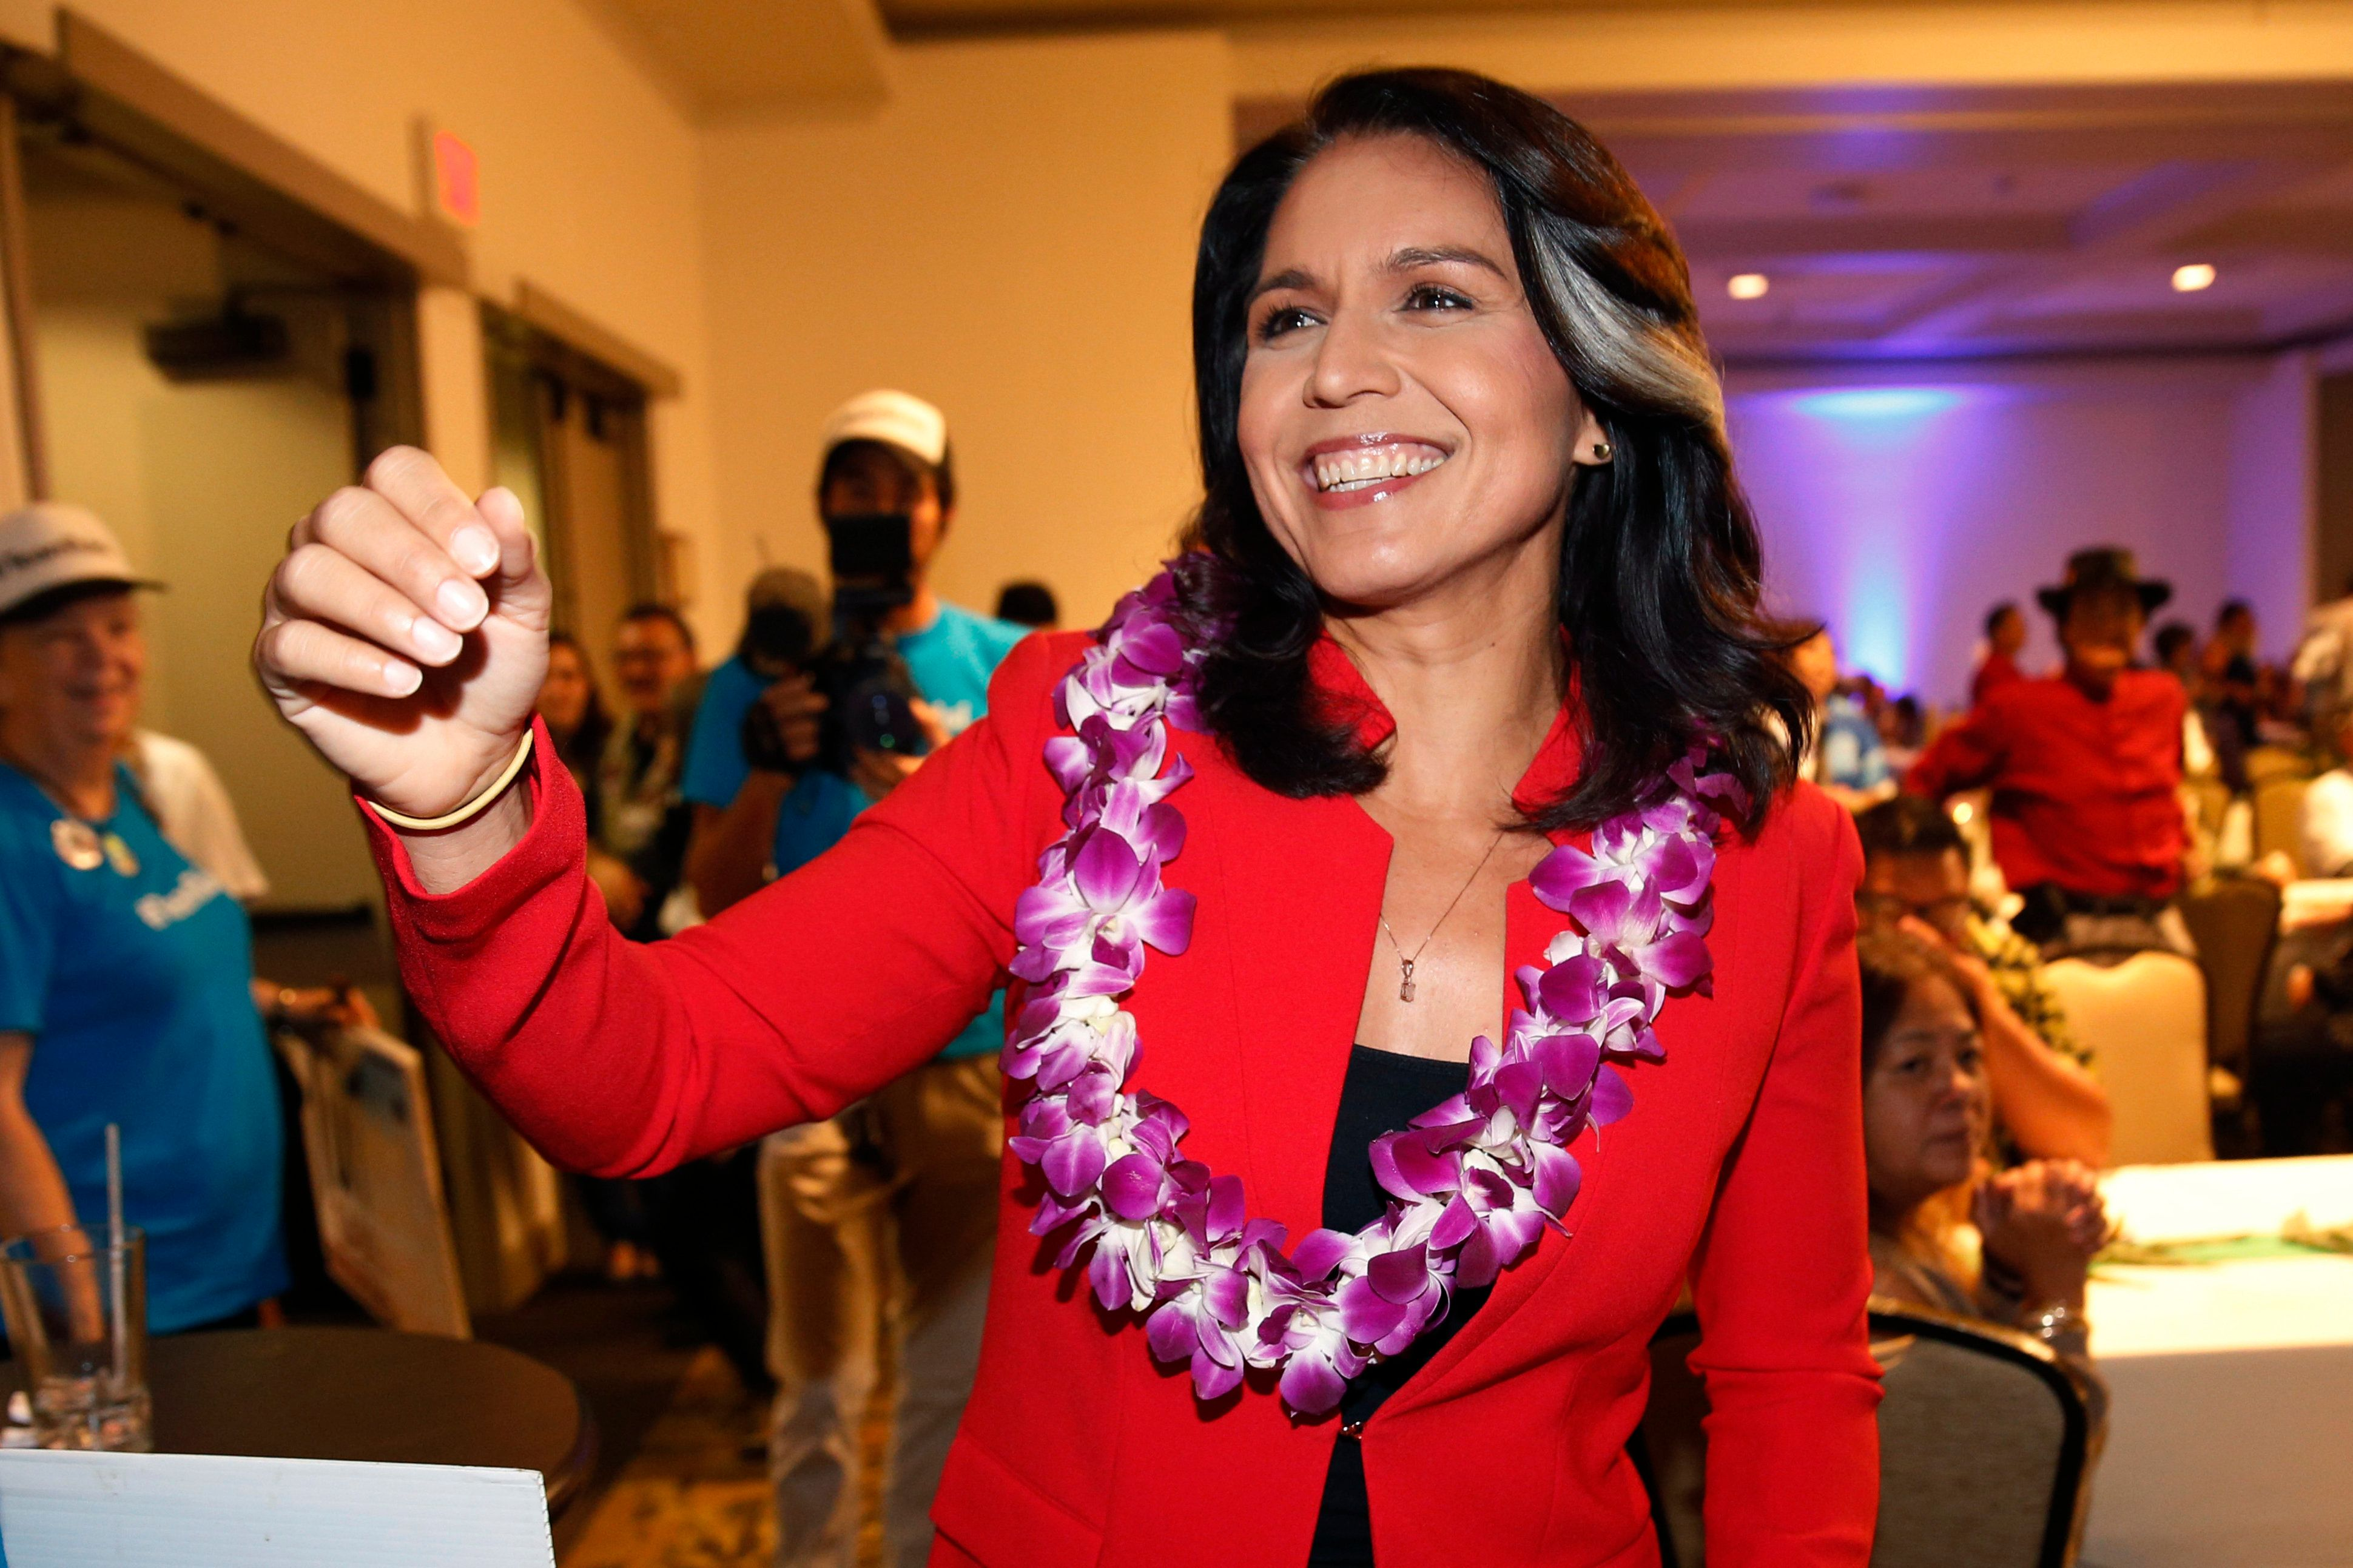 Rep. Tulsi Gabbardis pitching herself as Democrats' top anti-war voice and a serious progressive in her bid for t